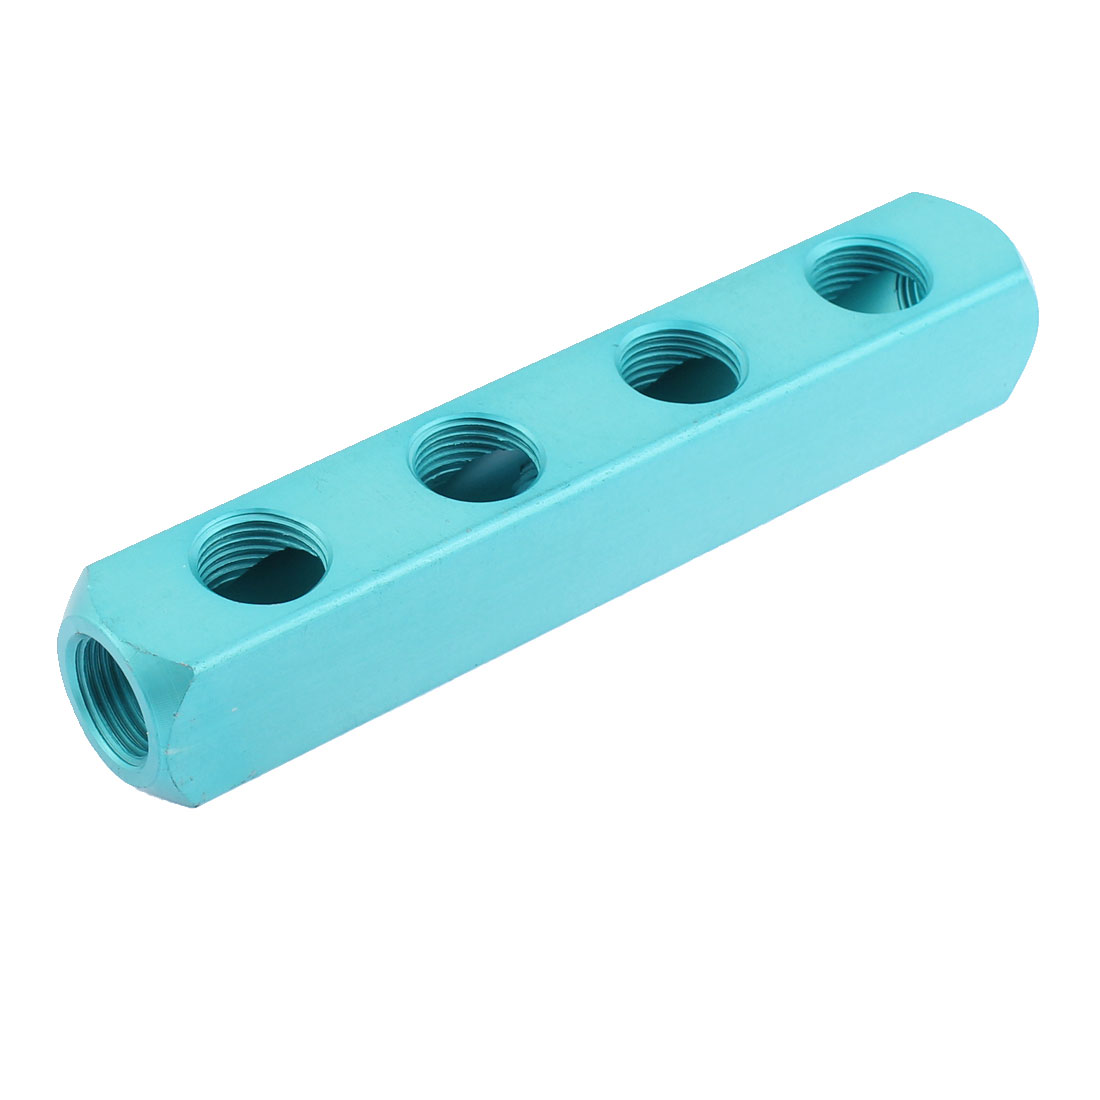 1/2BSP Thread 4 Way Quick Connect Aluminum Manifold Block Splitter